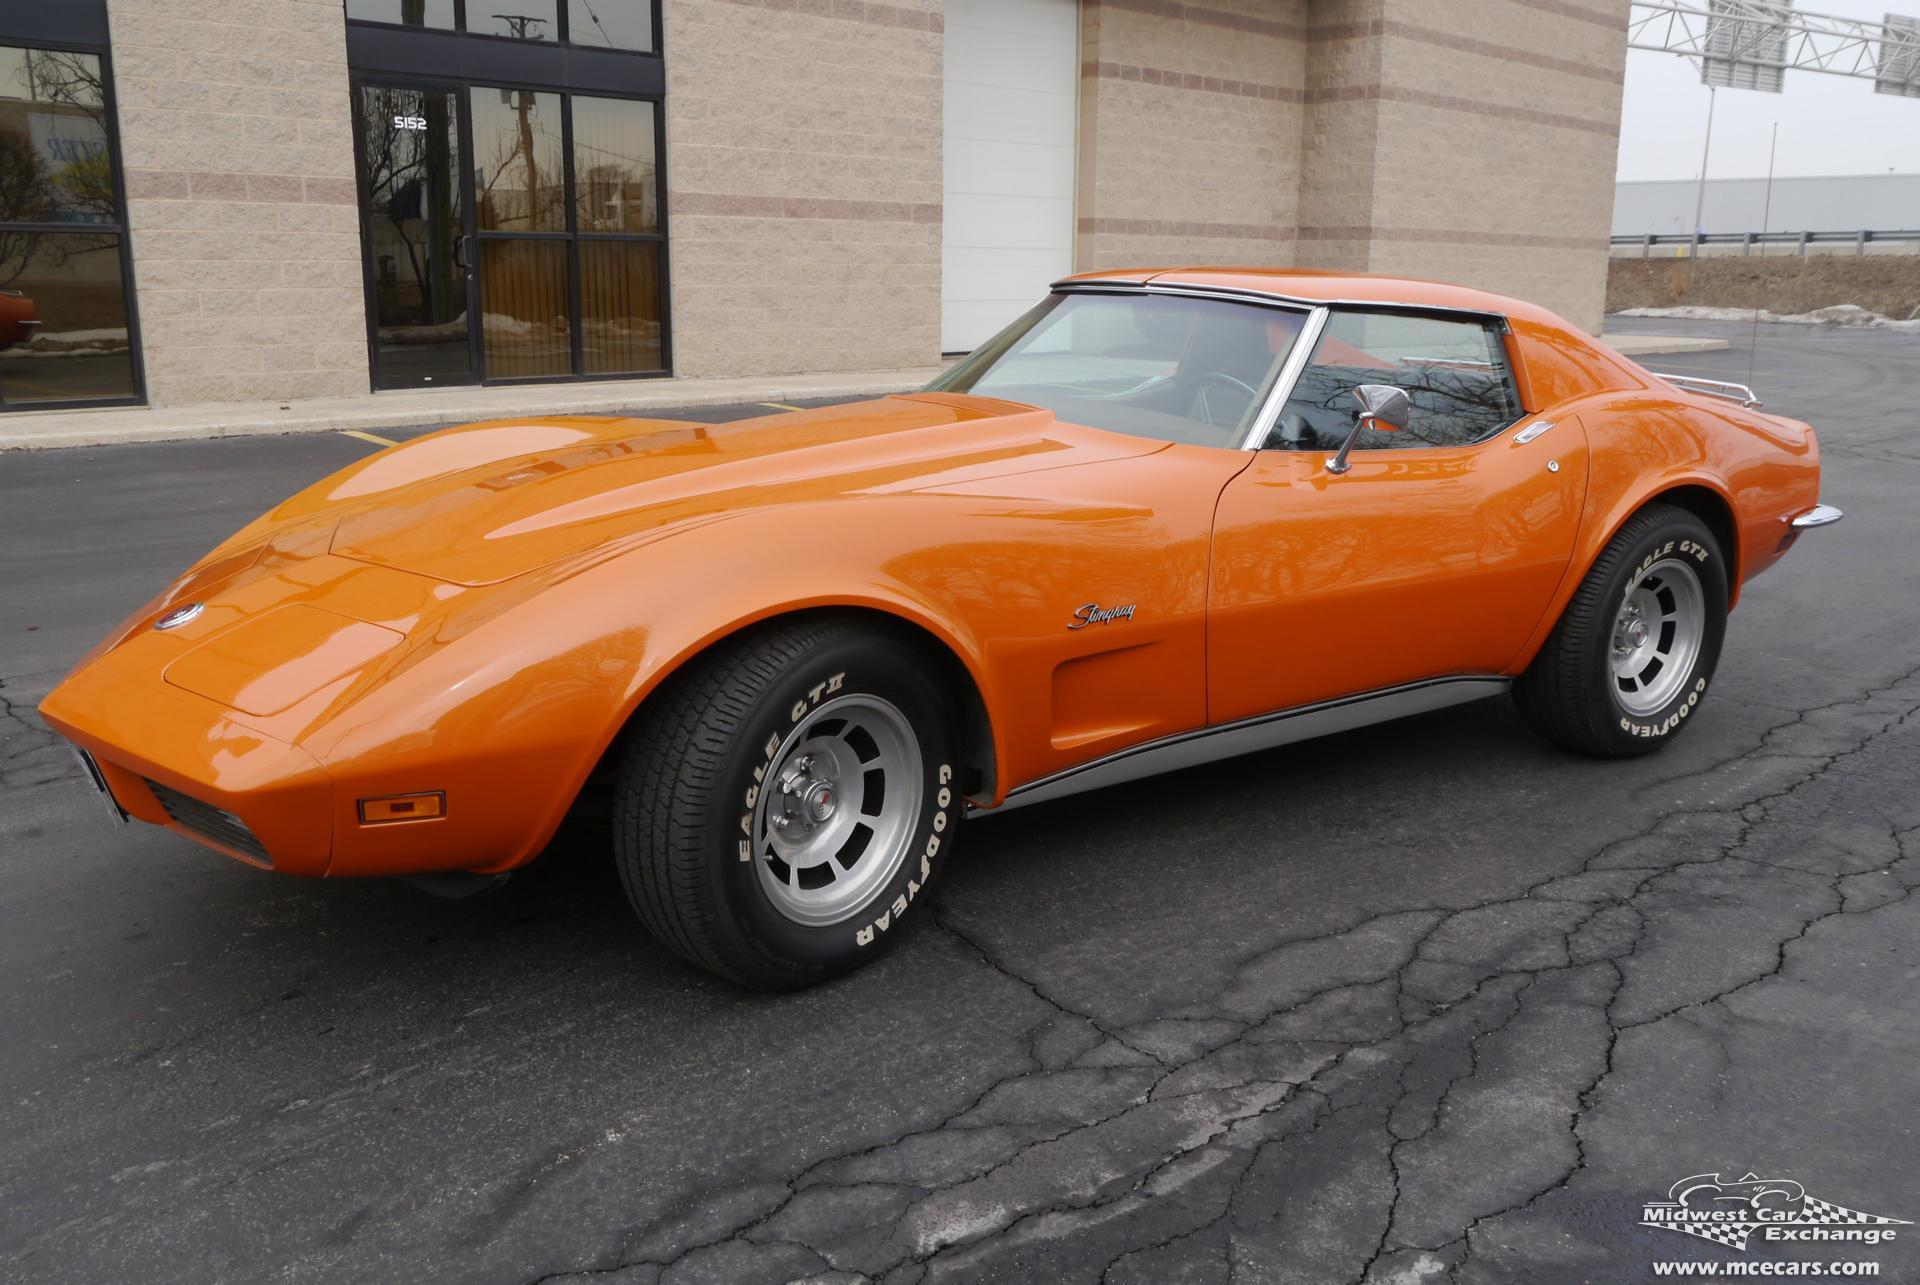 Picture of 1973 chevrolet corvette coupe exterior - 1973 Chevrolet Corvette Coupe